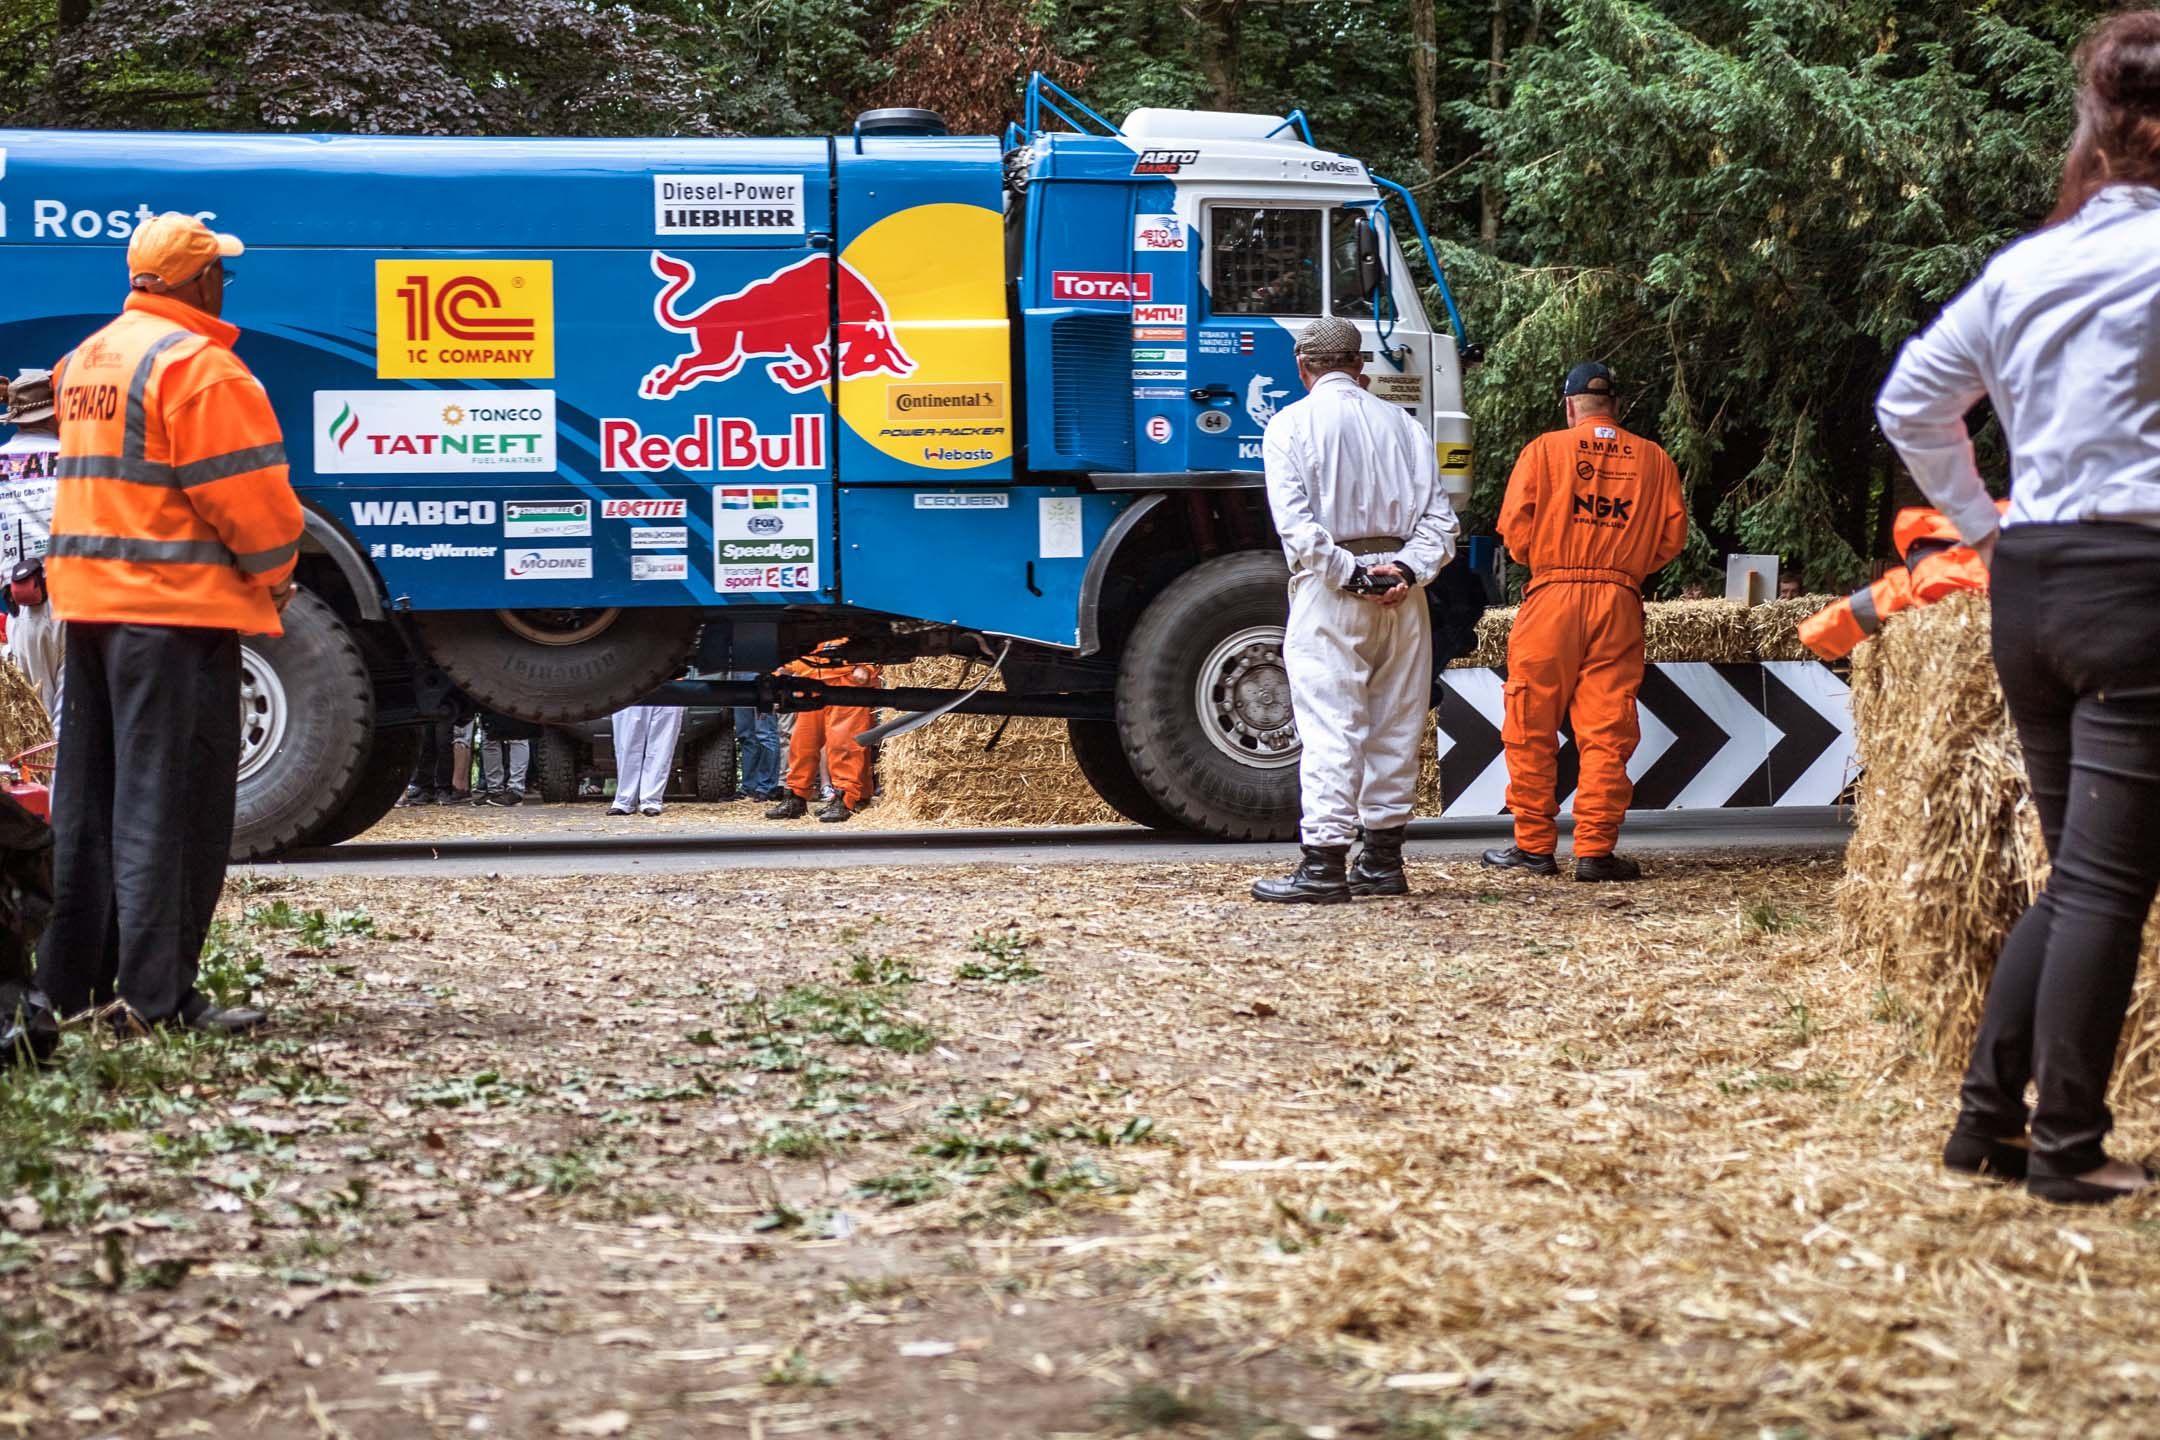 At the entry corner near the famously unforgiving flint wall, a leviathan appears. Intended for Dakar desert racing, this Red Bull-liveried truck appears in a whoosh of turbodiesel fury, then vanishes around the corner, chasing the finish line.